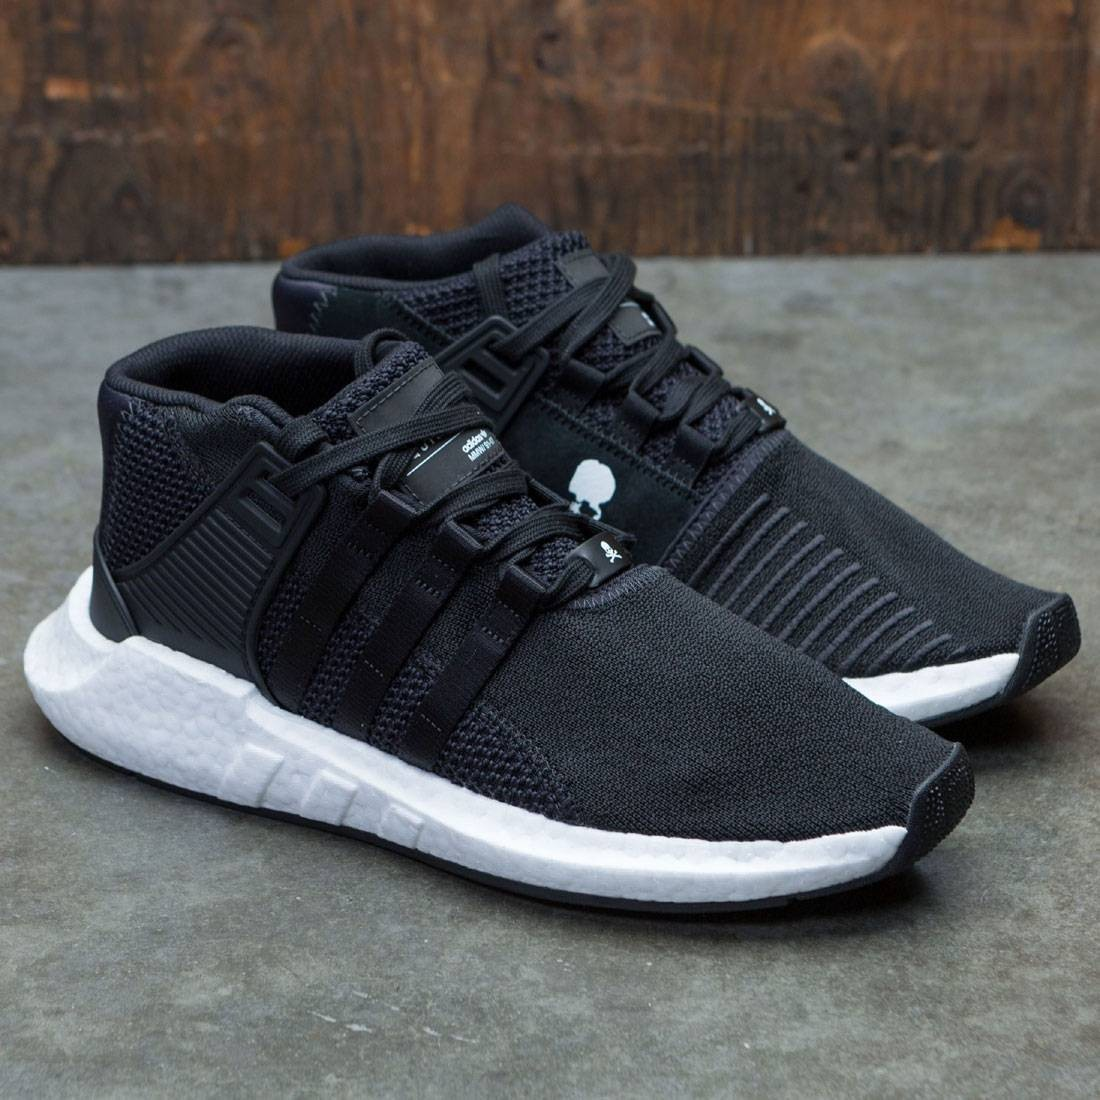 online store 2afb3 0e976 Adidas x Mastermind World Men EQT Support 93/17 Mid (black / core black /  footwear white)